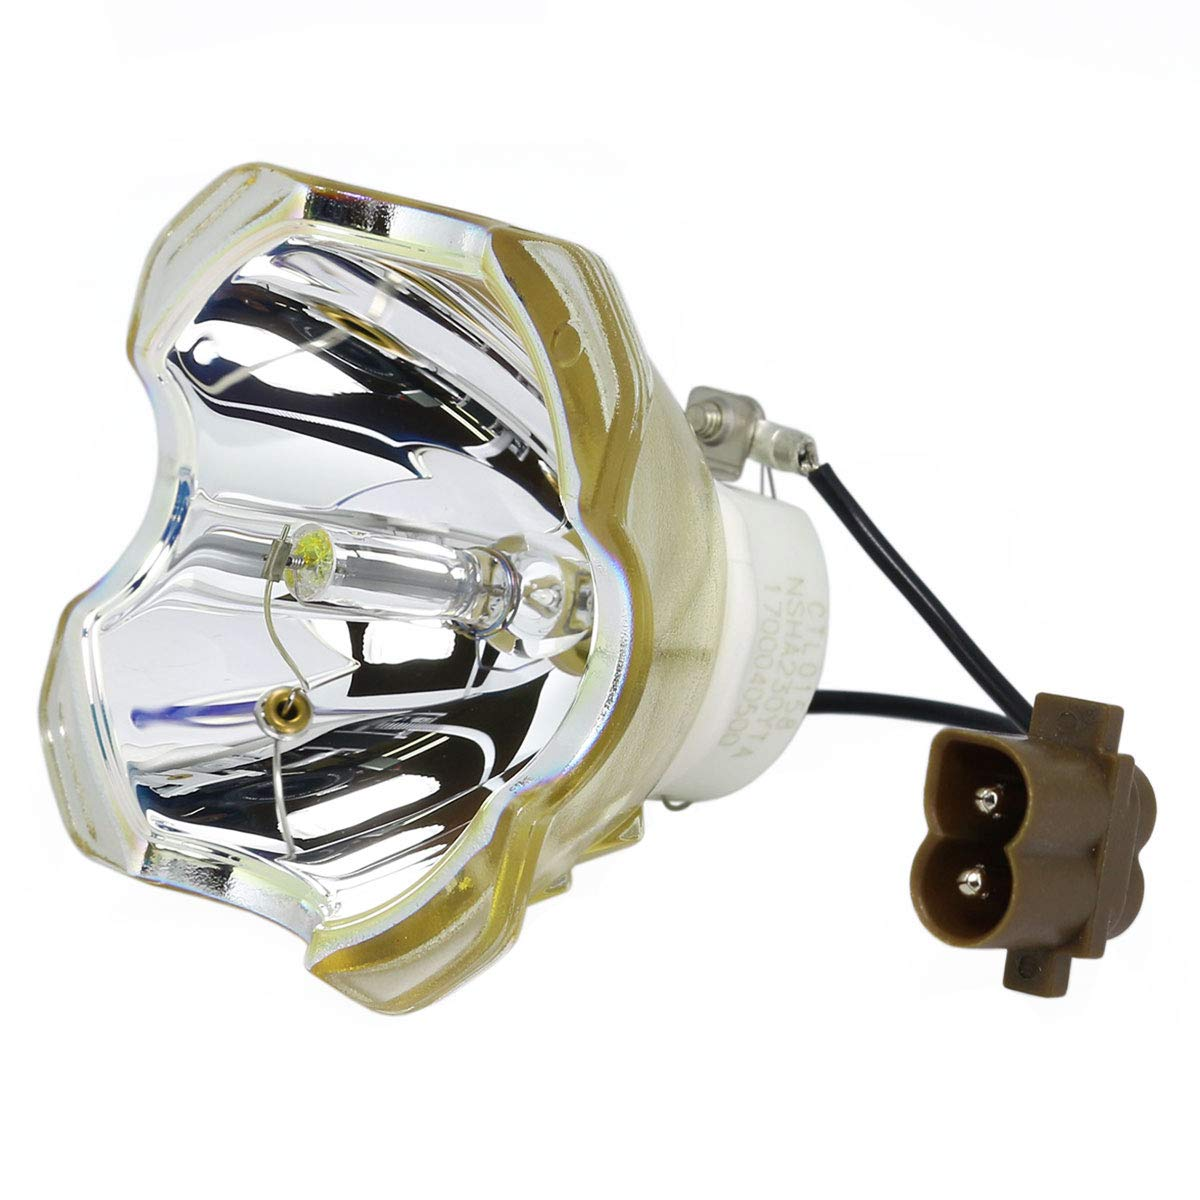 Original Ushio Projector Lamp Replacement for Ushio NSHA230M Bulb Only